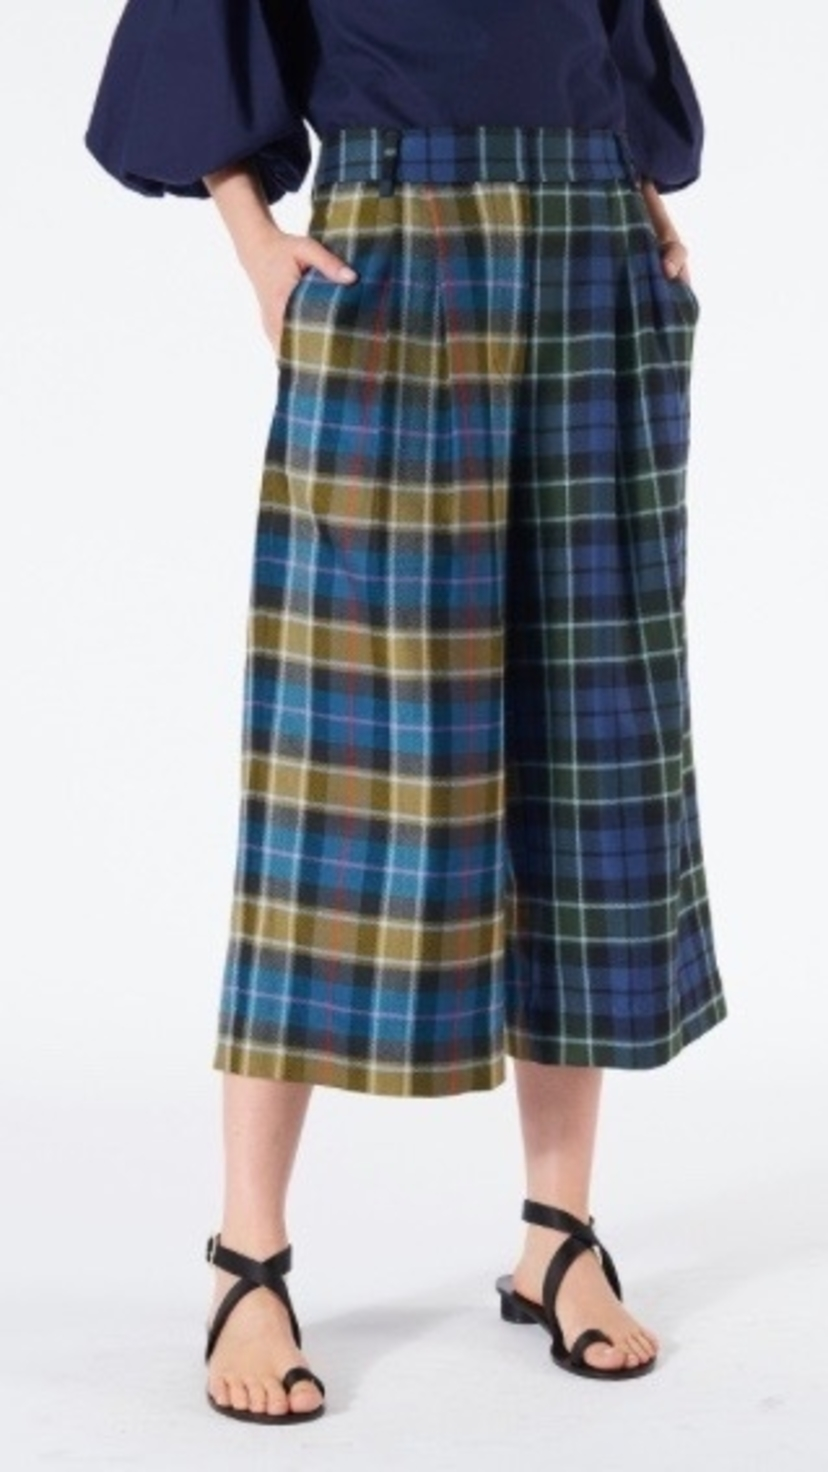 Tibi TIBI TARTAN STELLA CULOTTE GREEN MULTI PLAID Pants